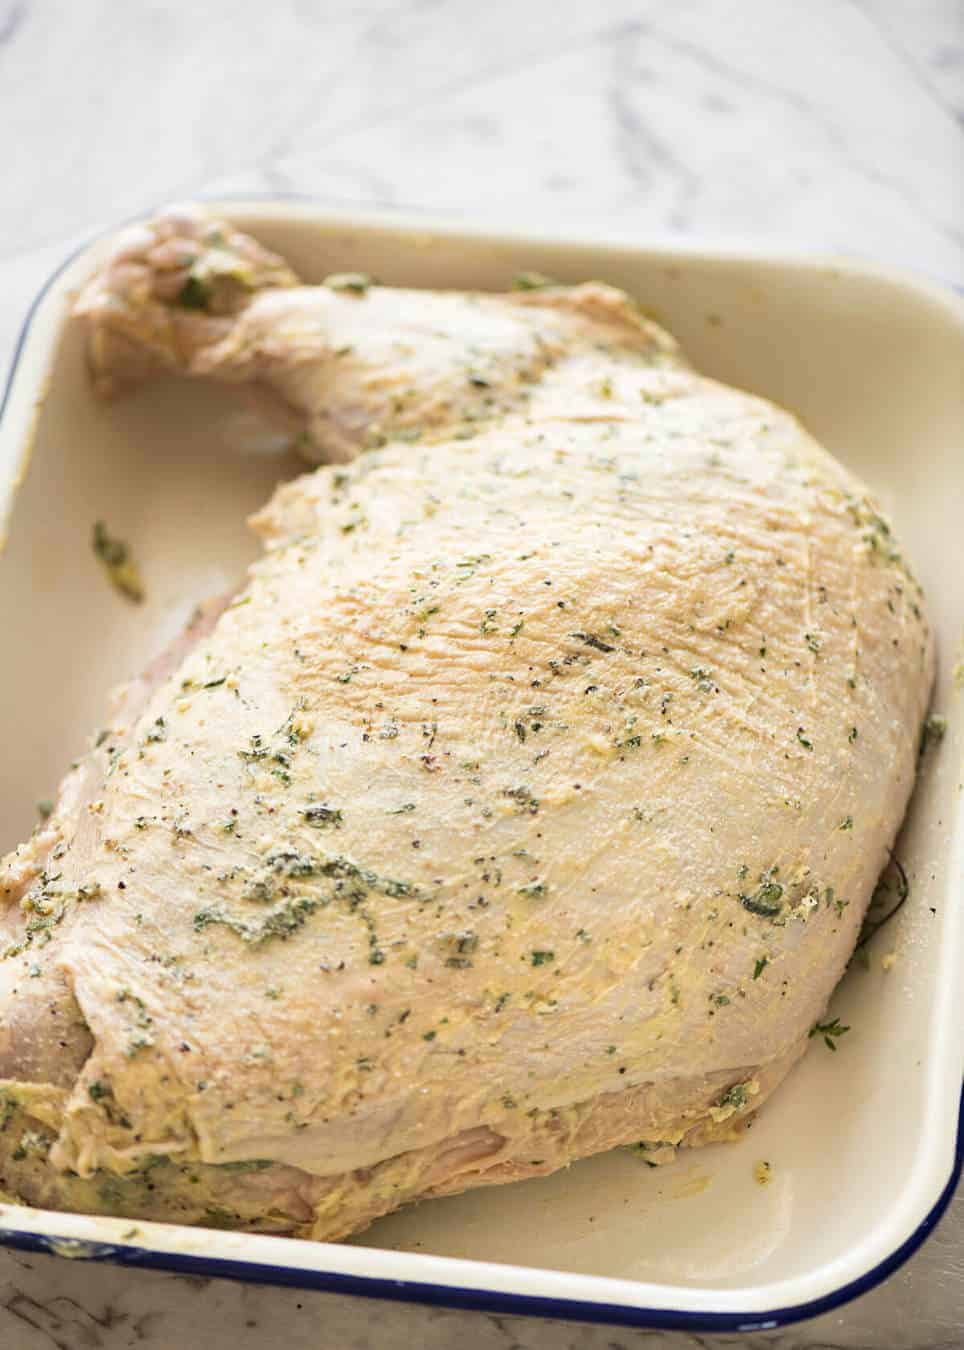 How to make turkey with herb butter under the skin (quick video tutorial provided) recipetineats.com